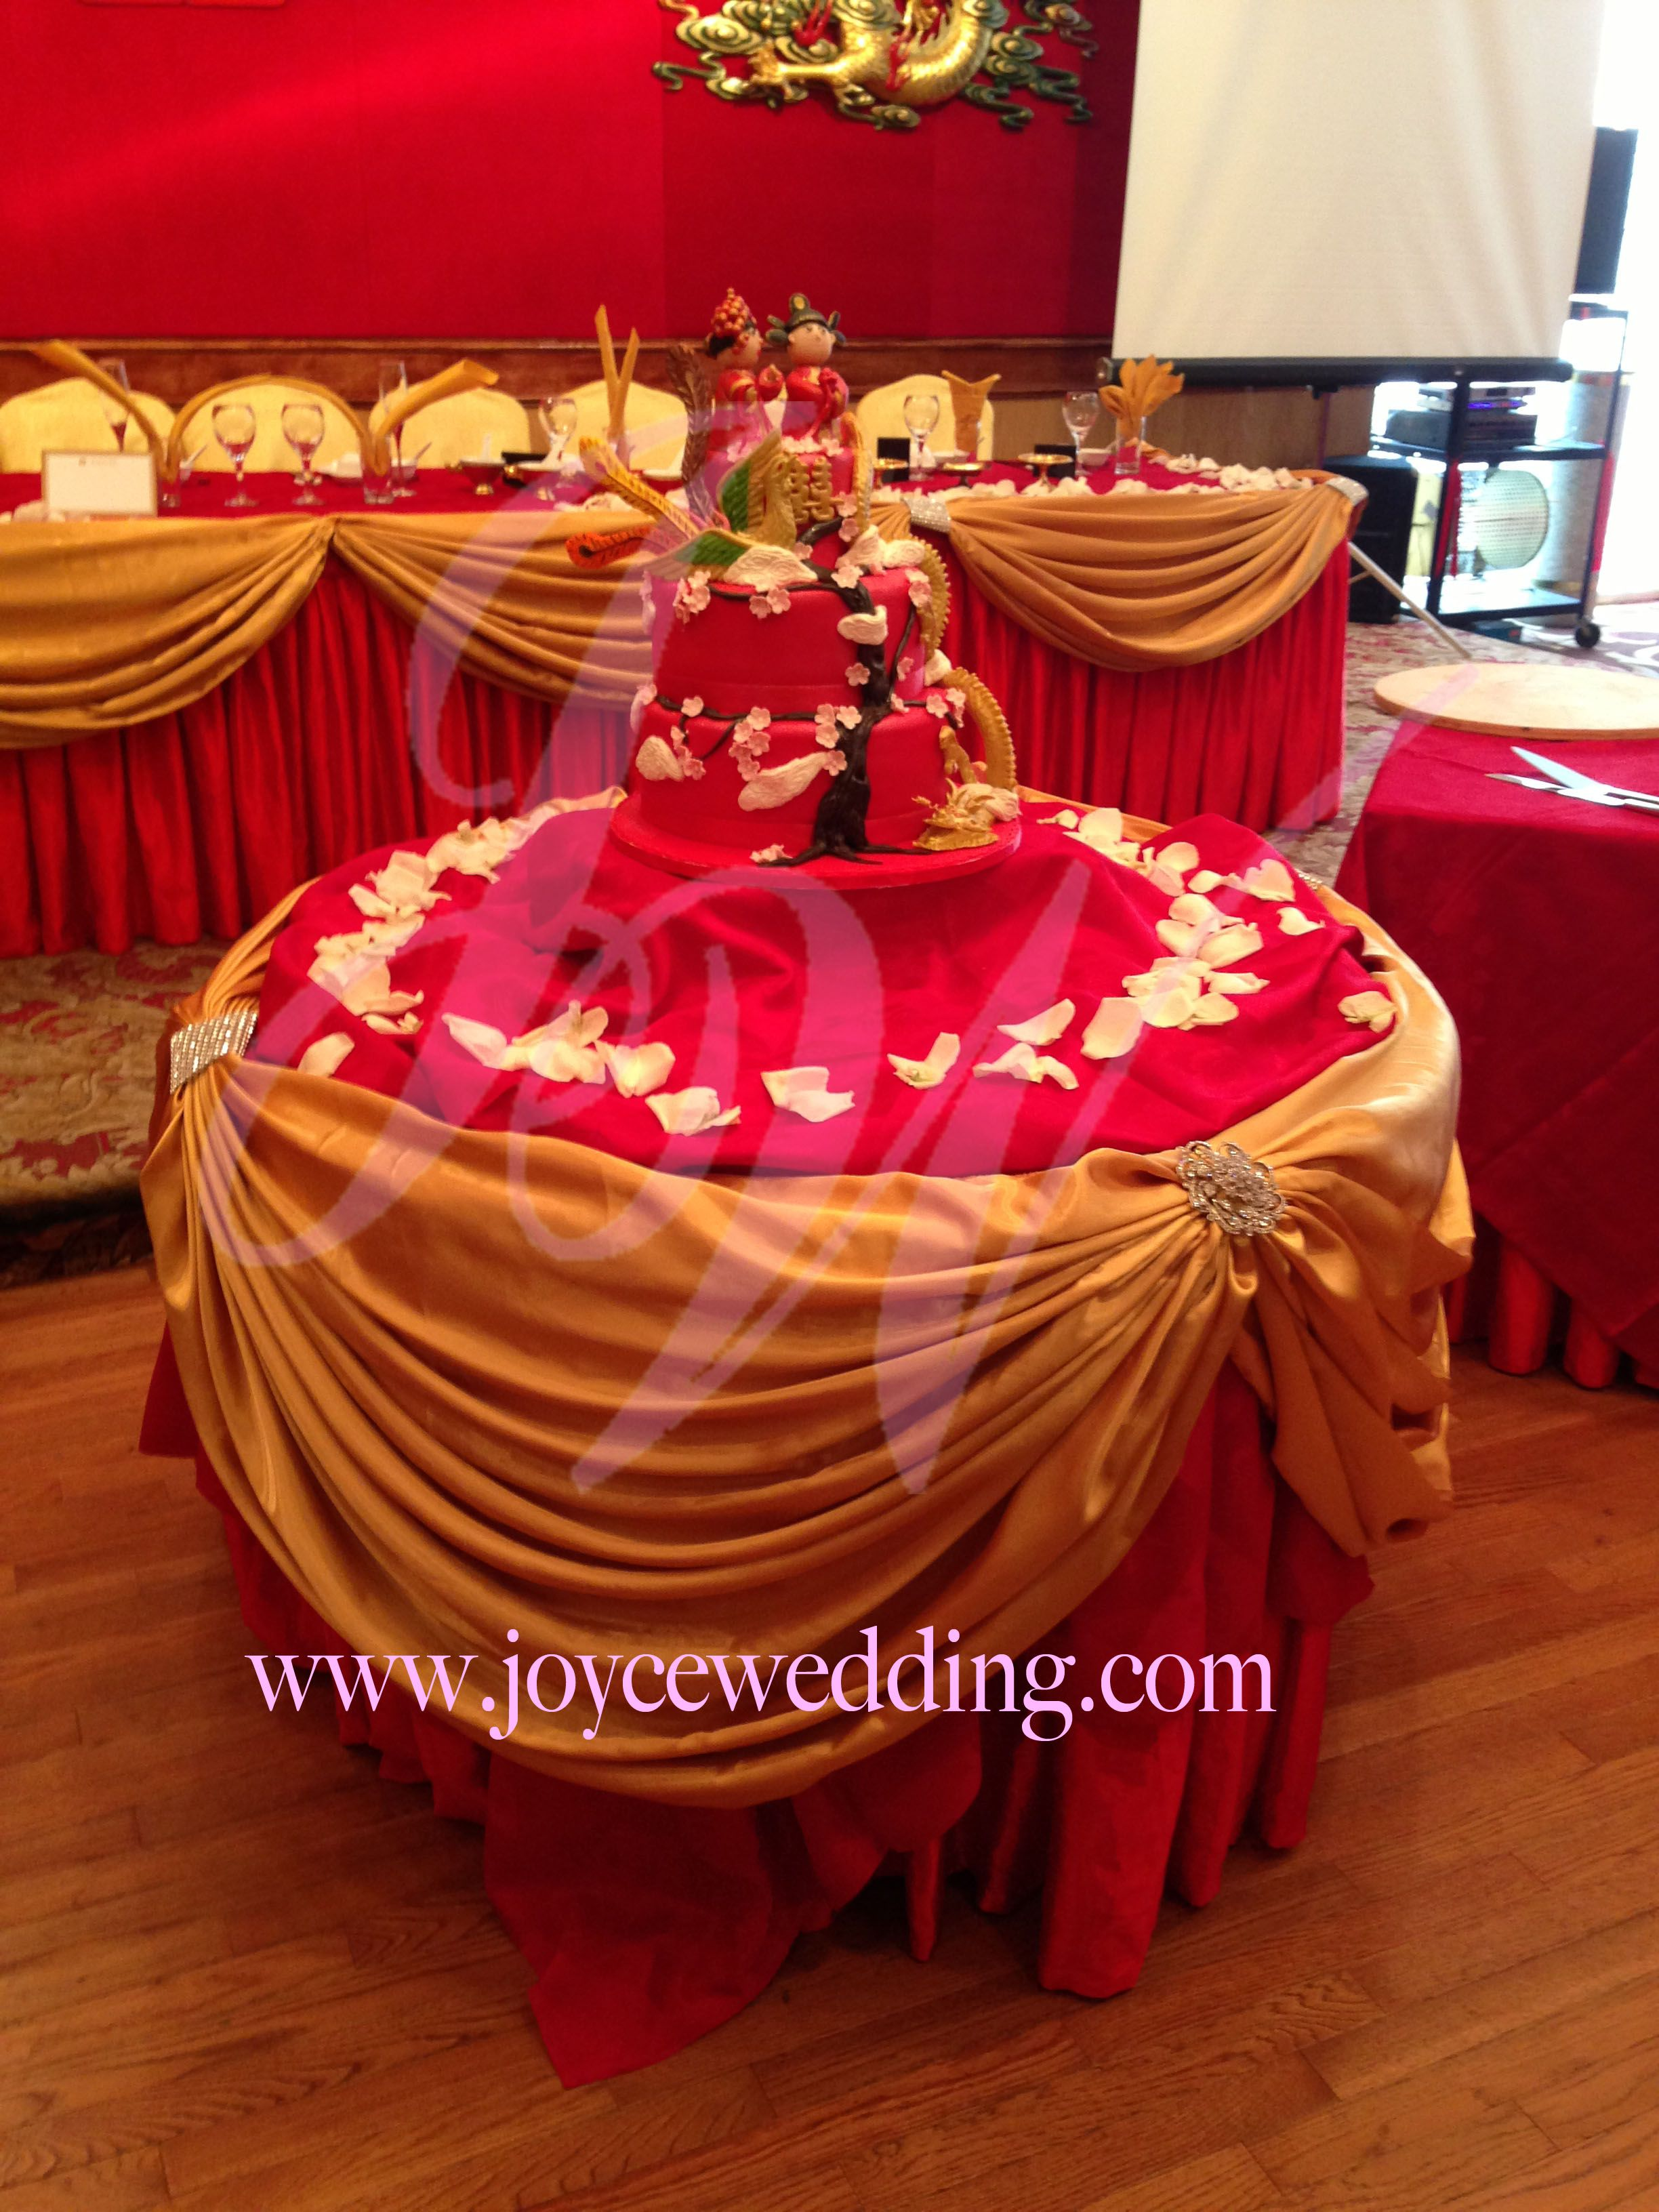 Red and Gold Wedding Decoration Gold weddings, Cake